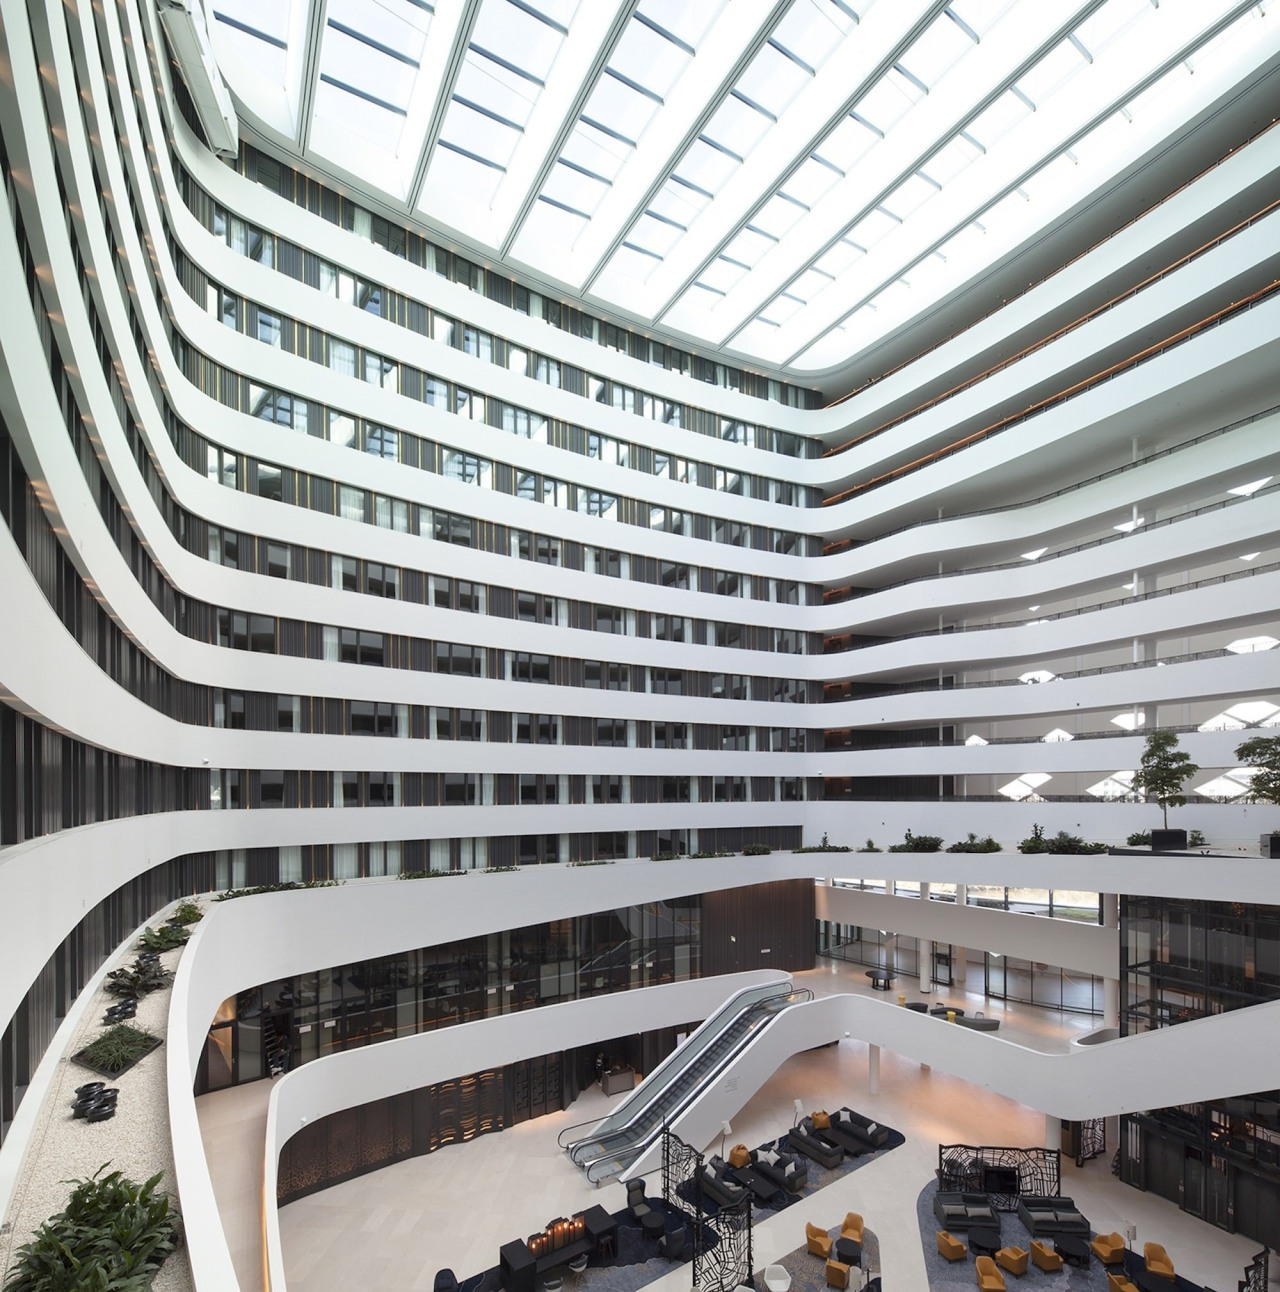 The lobby features a seriously impressive skylight architecture, building, commercial building, corporate headquarters, daylighting, headquarters, metropolis, metropolitan area, mixed use, shopping mall, white, gray